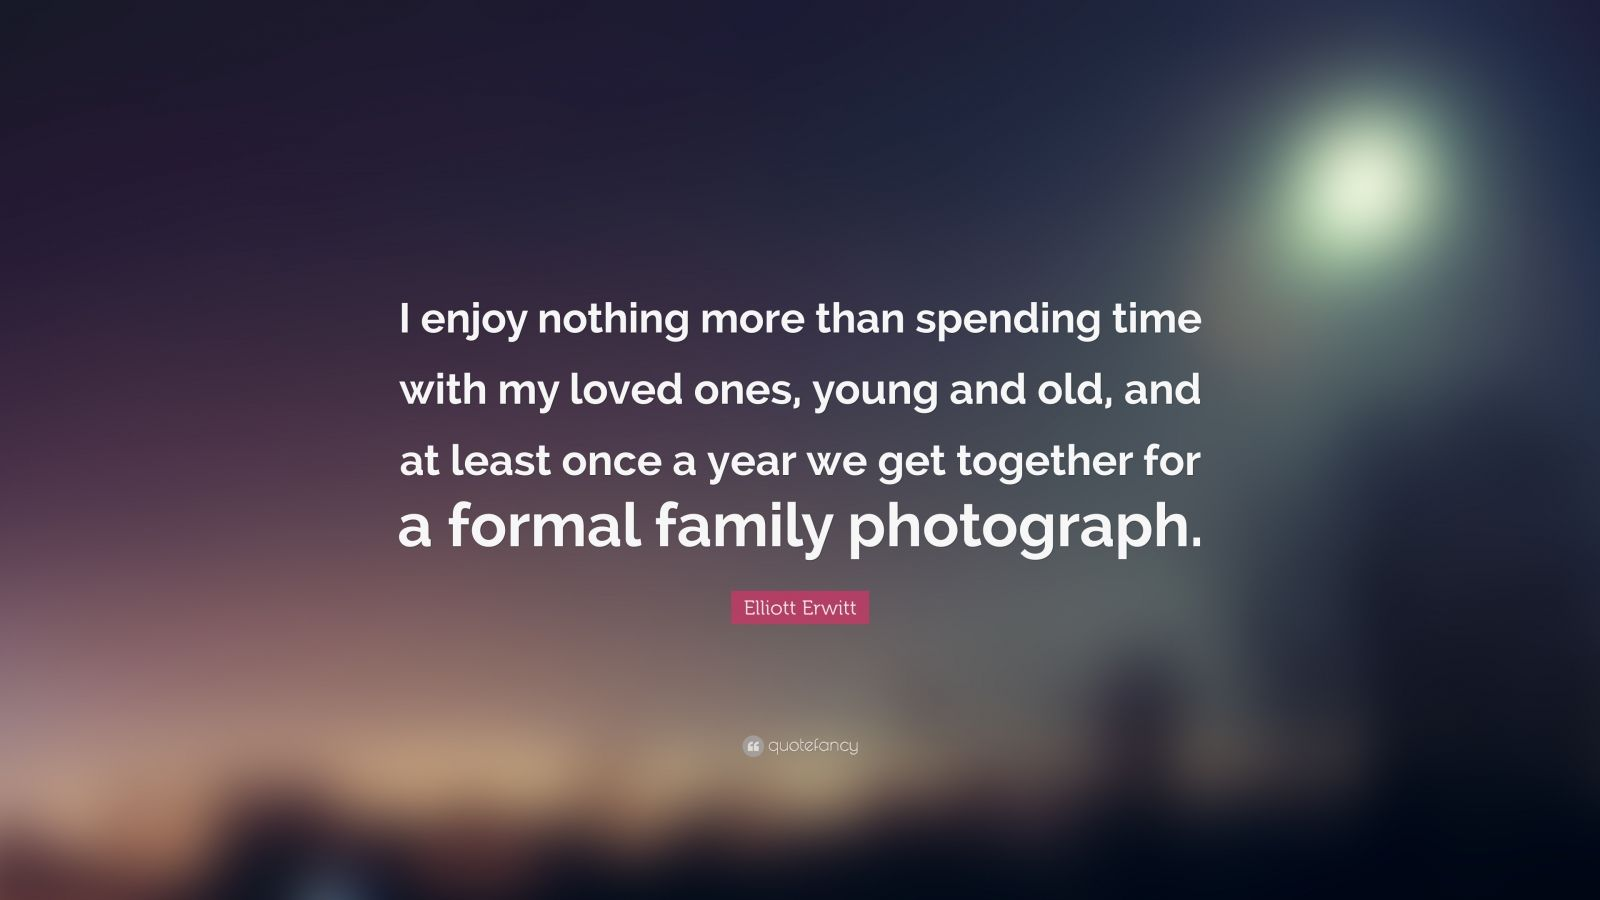 """Elliott Erwitt Quote: """"I enjoy nothing more than spending time with my loved ones, young and old, and at least once a year we get together for a formal family photograph."""""""